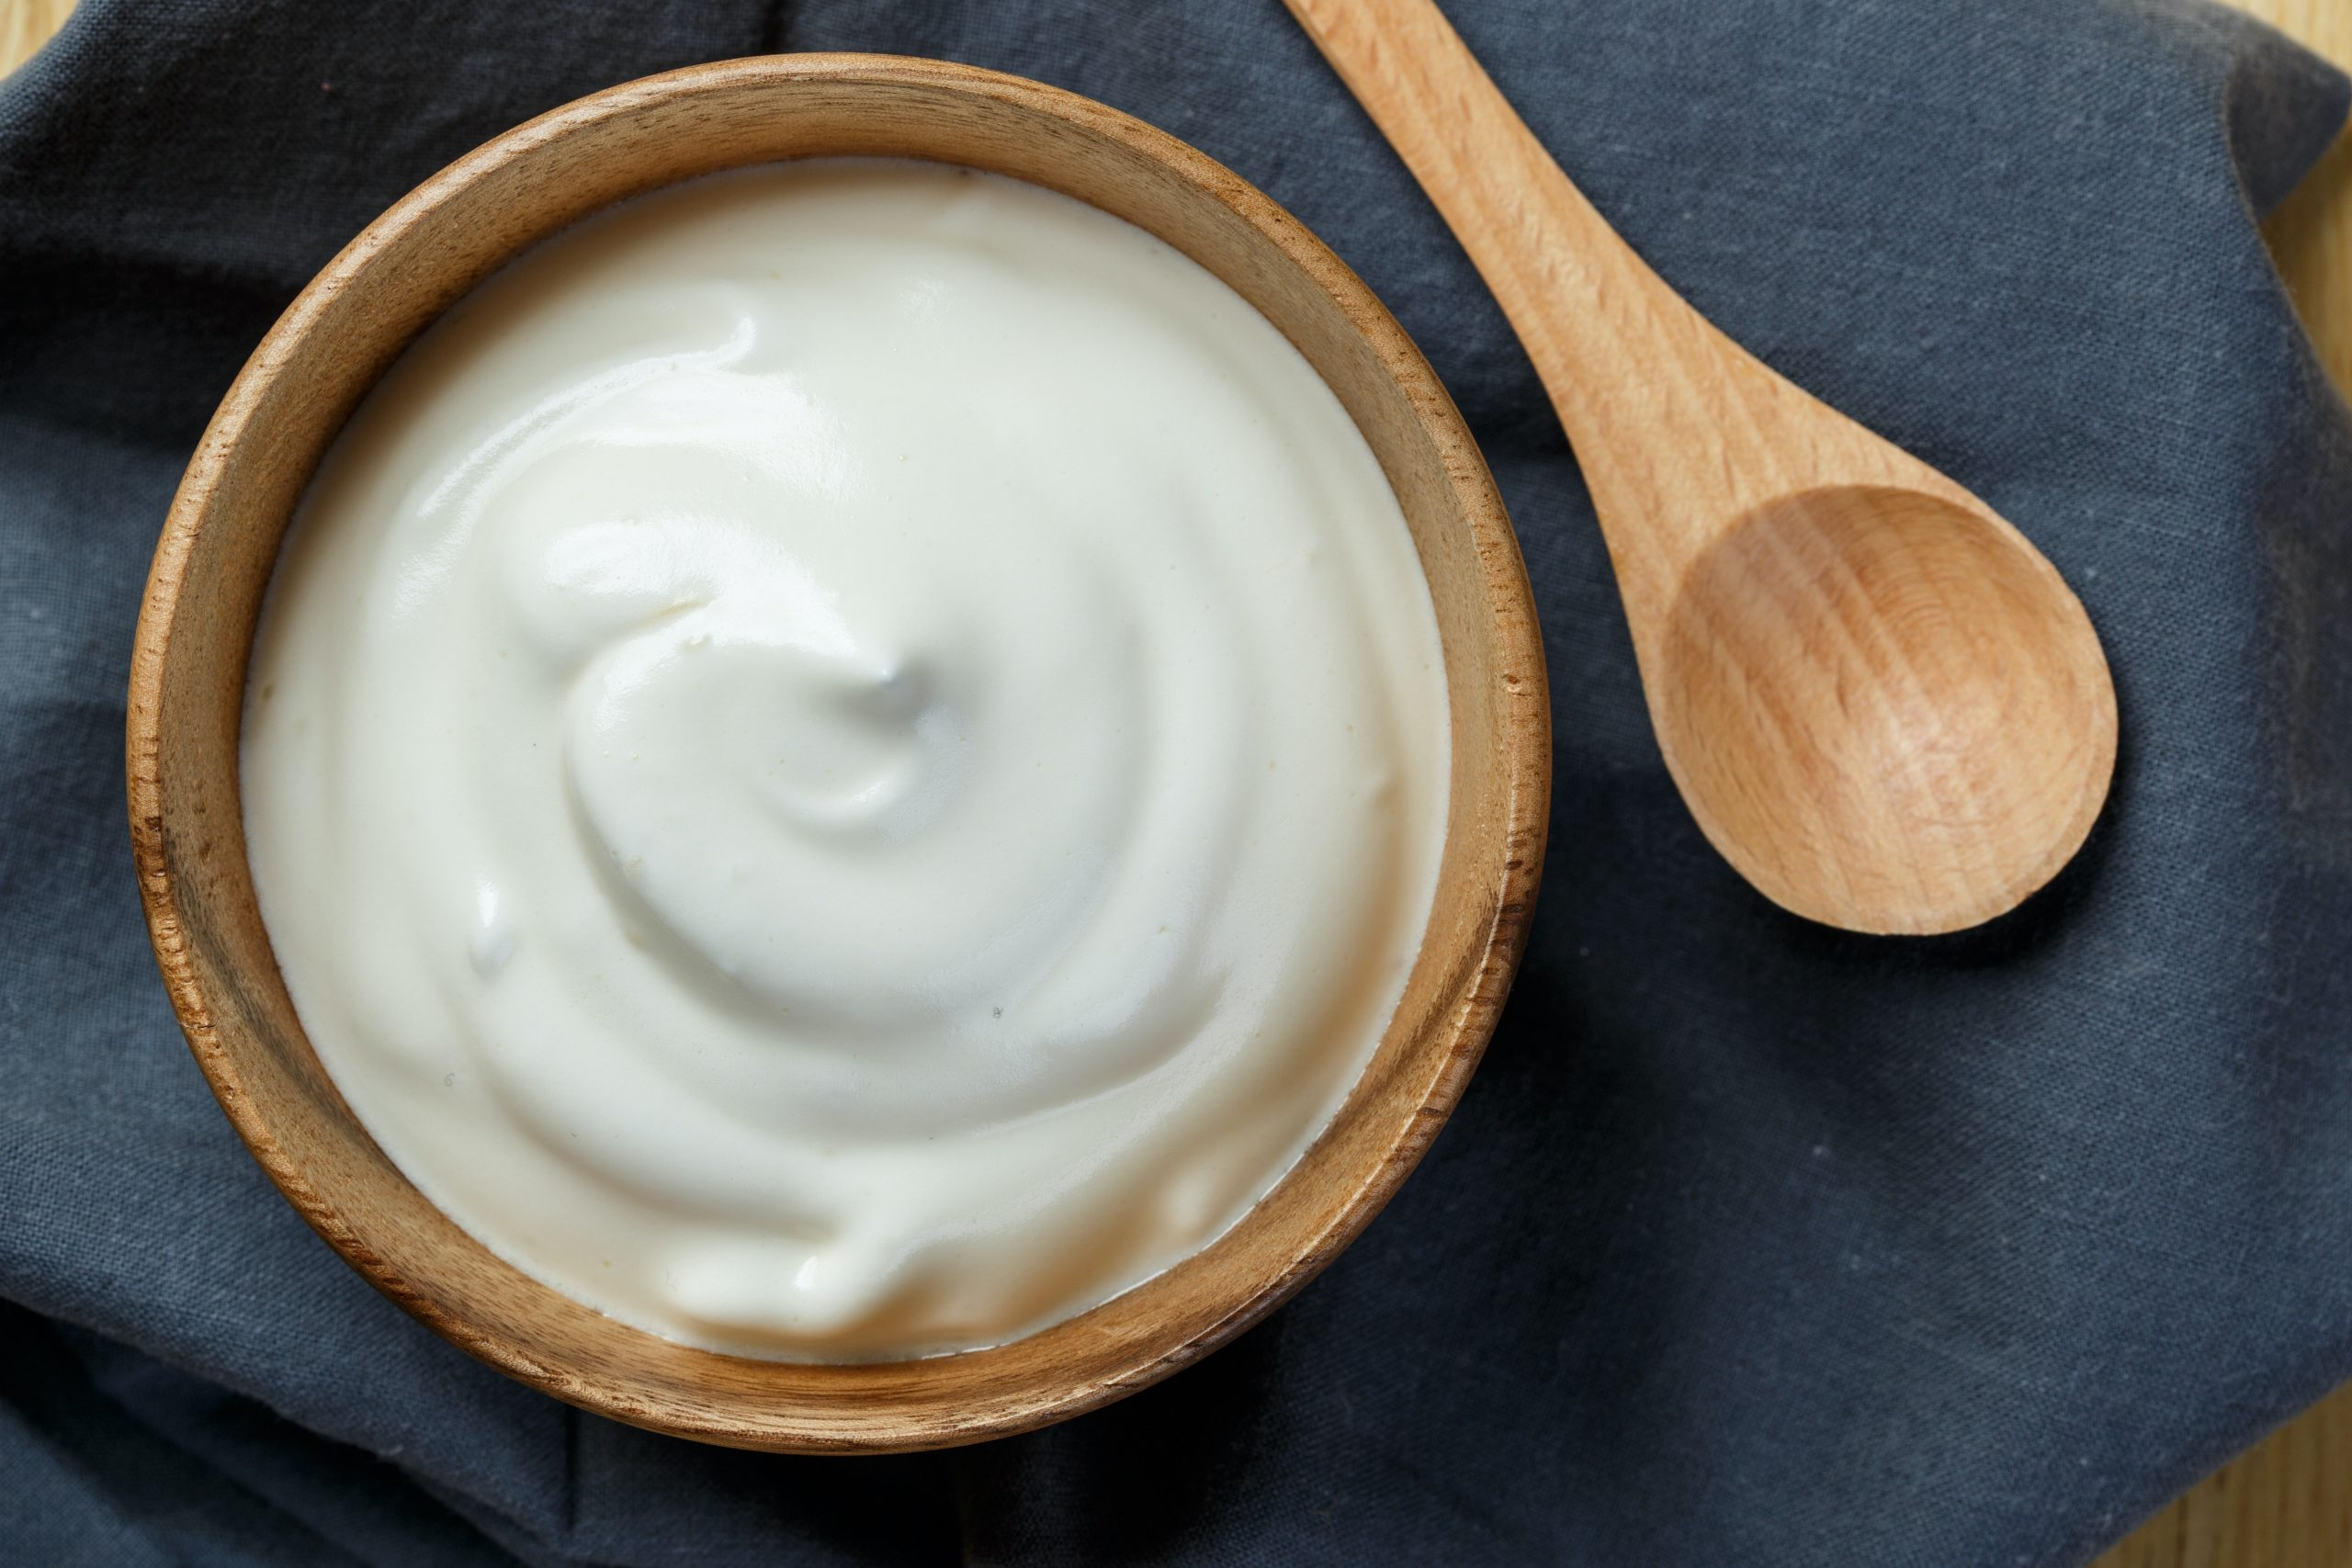 Bowl of plain yoghurt with wooden spoon.